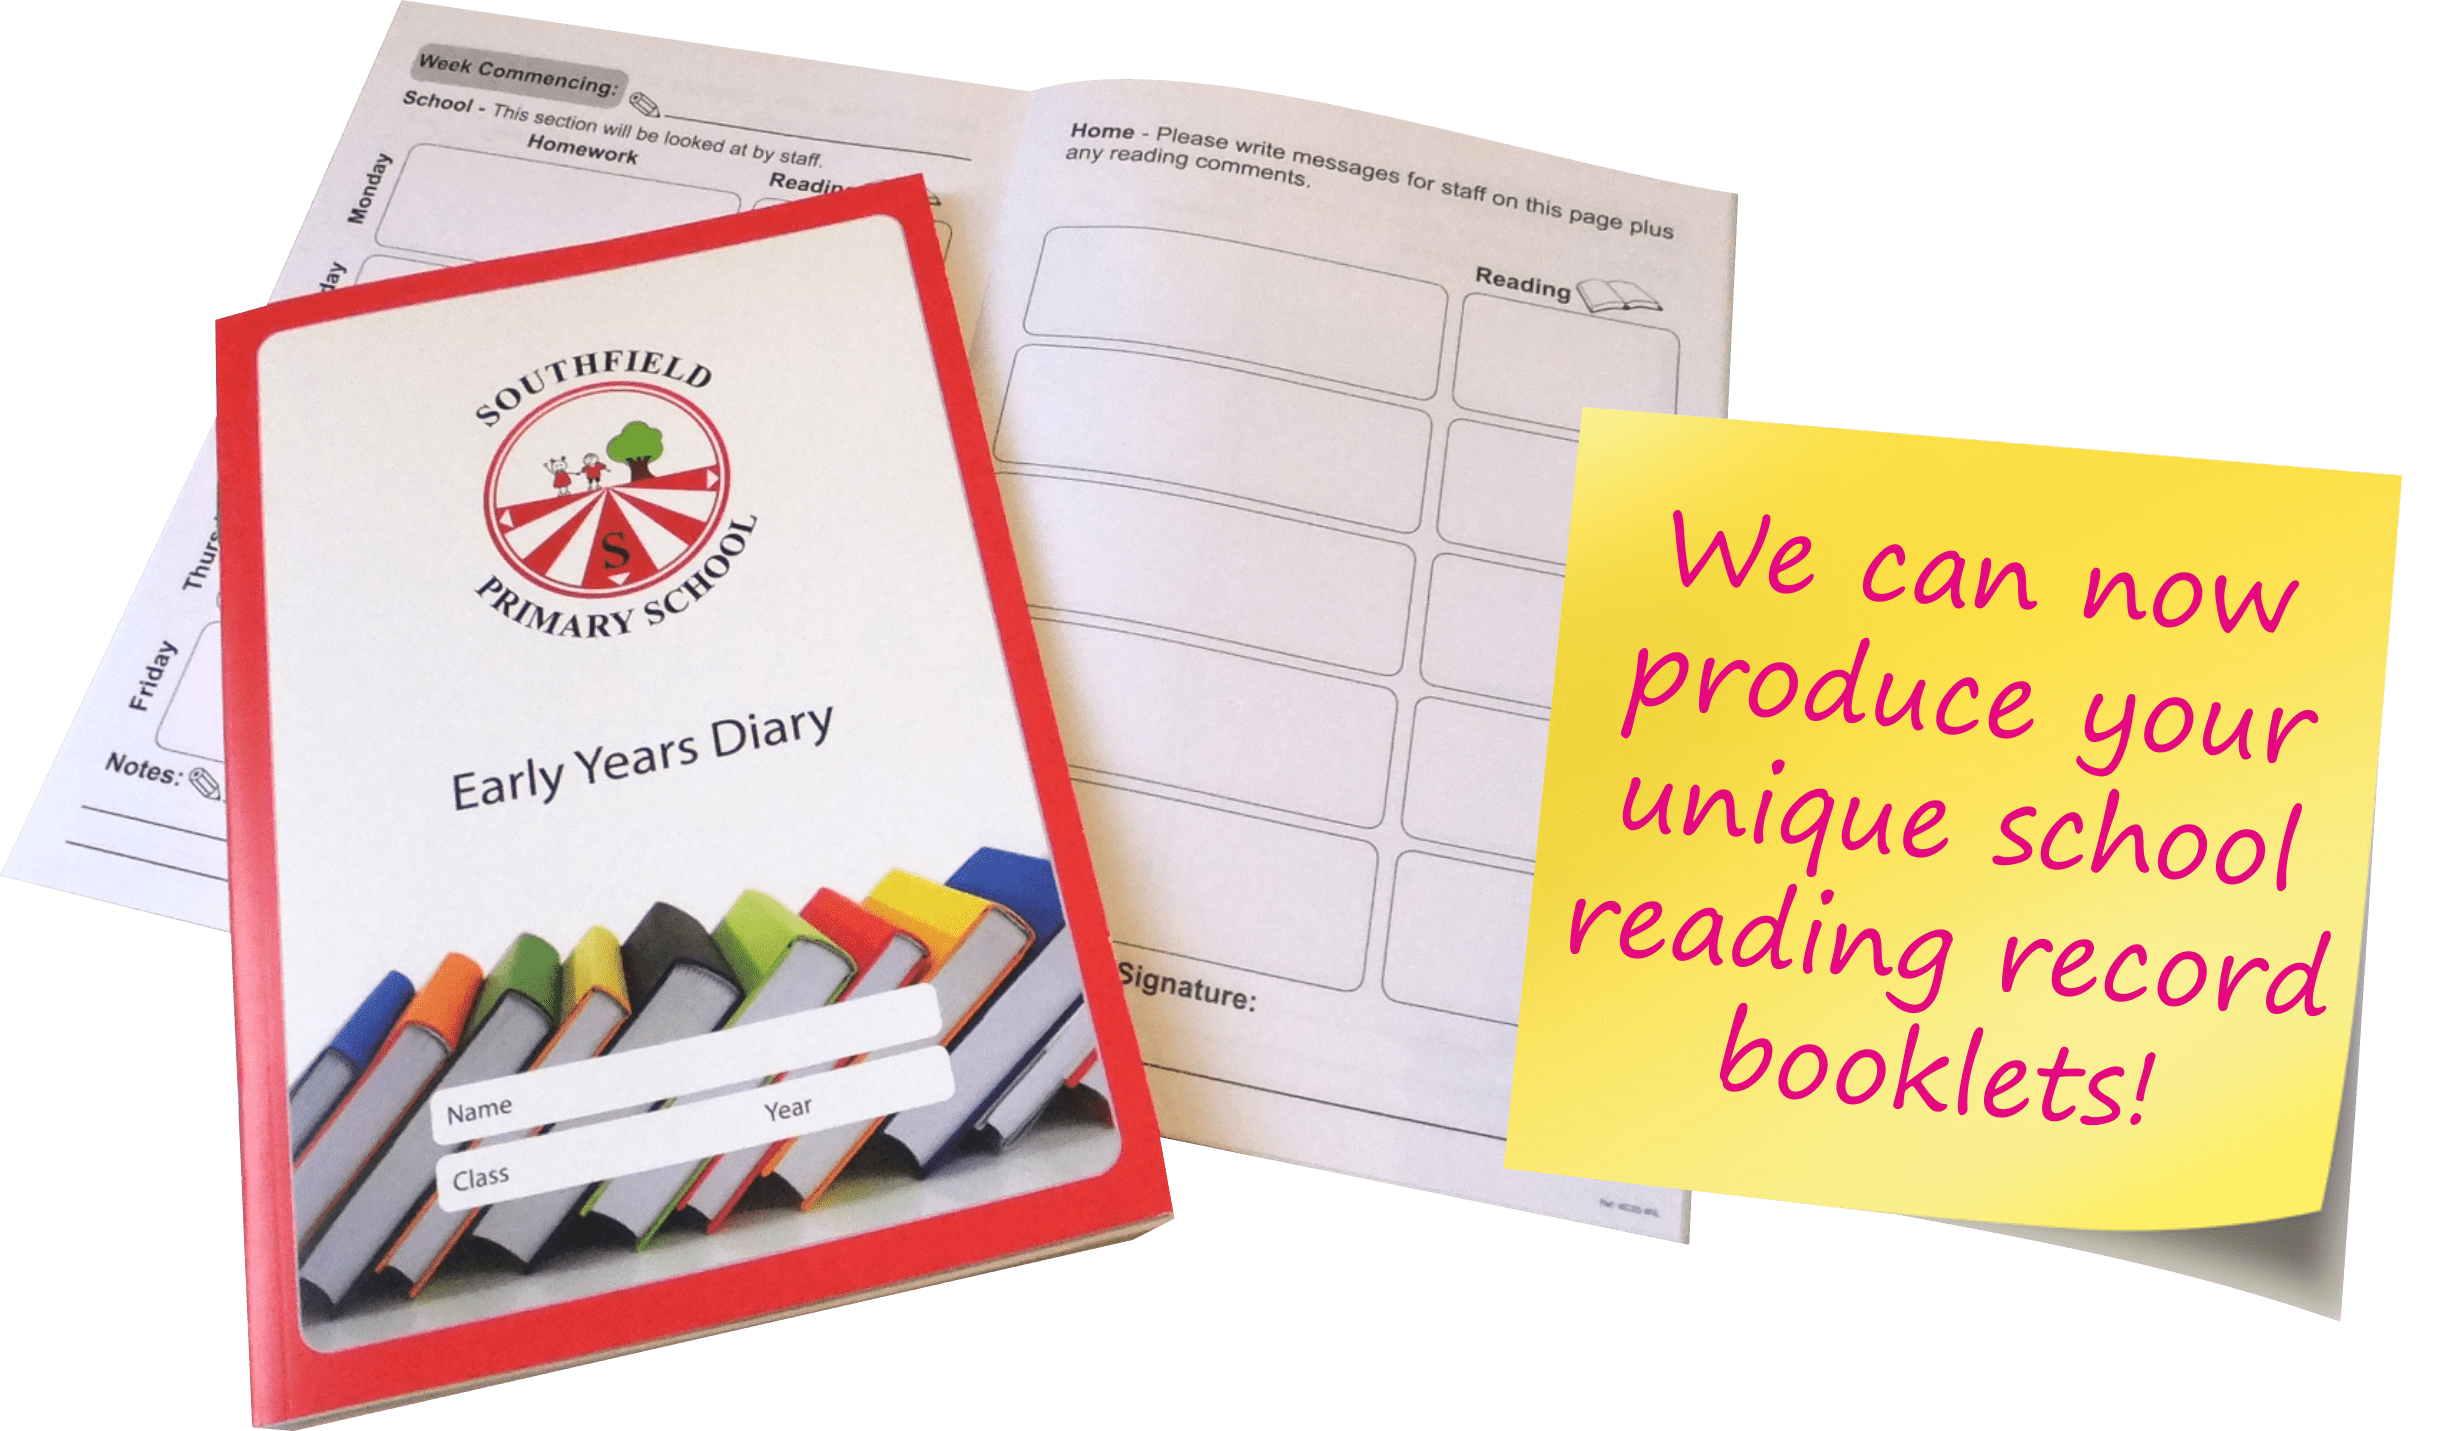 Reading Record Books - Quick Start Guide